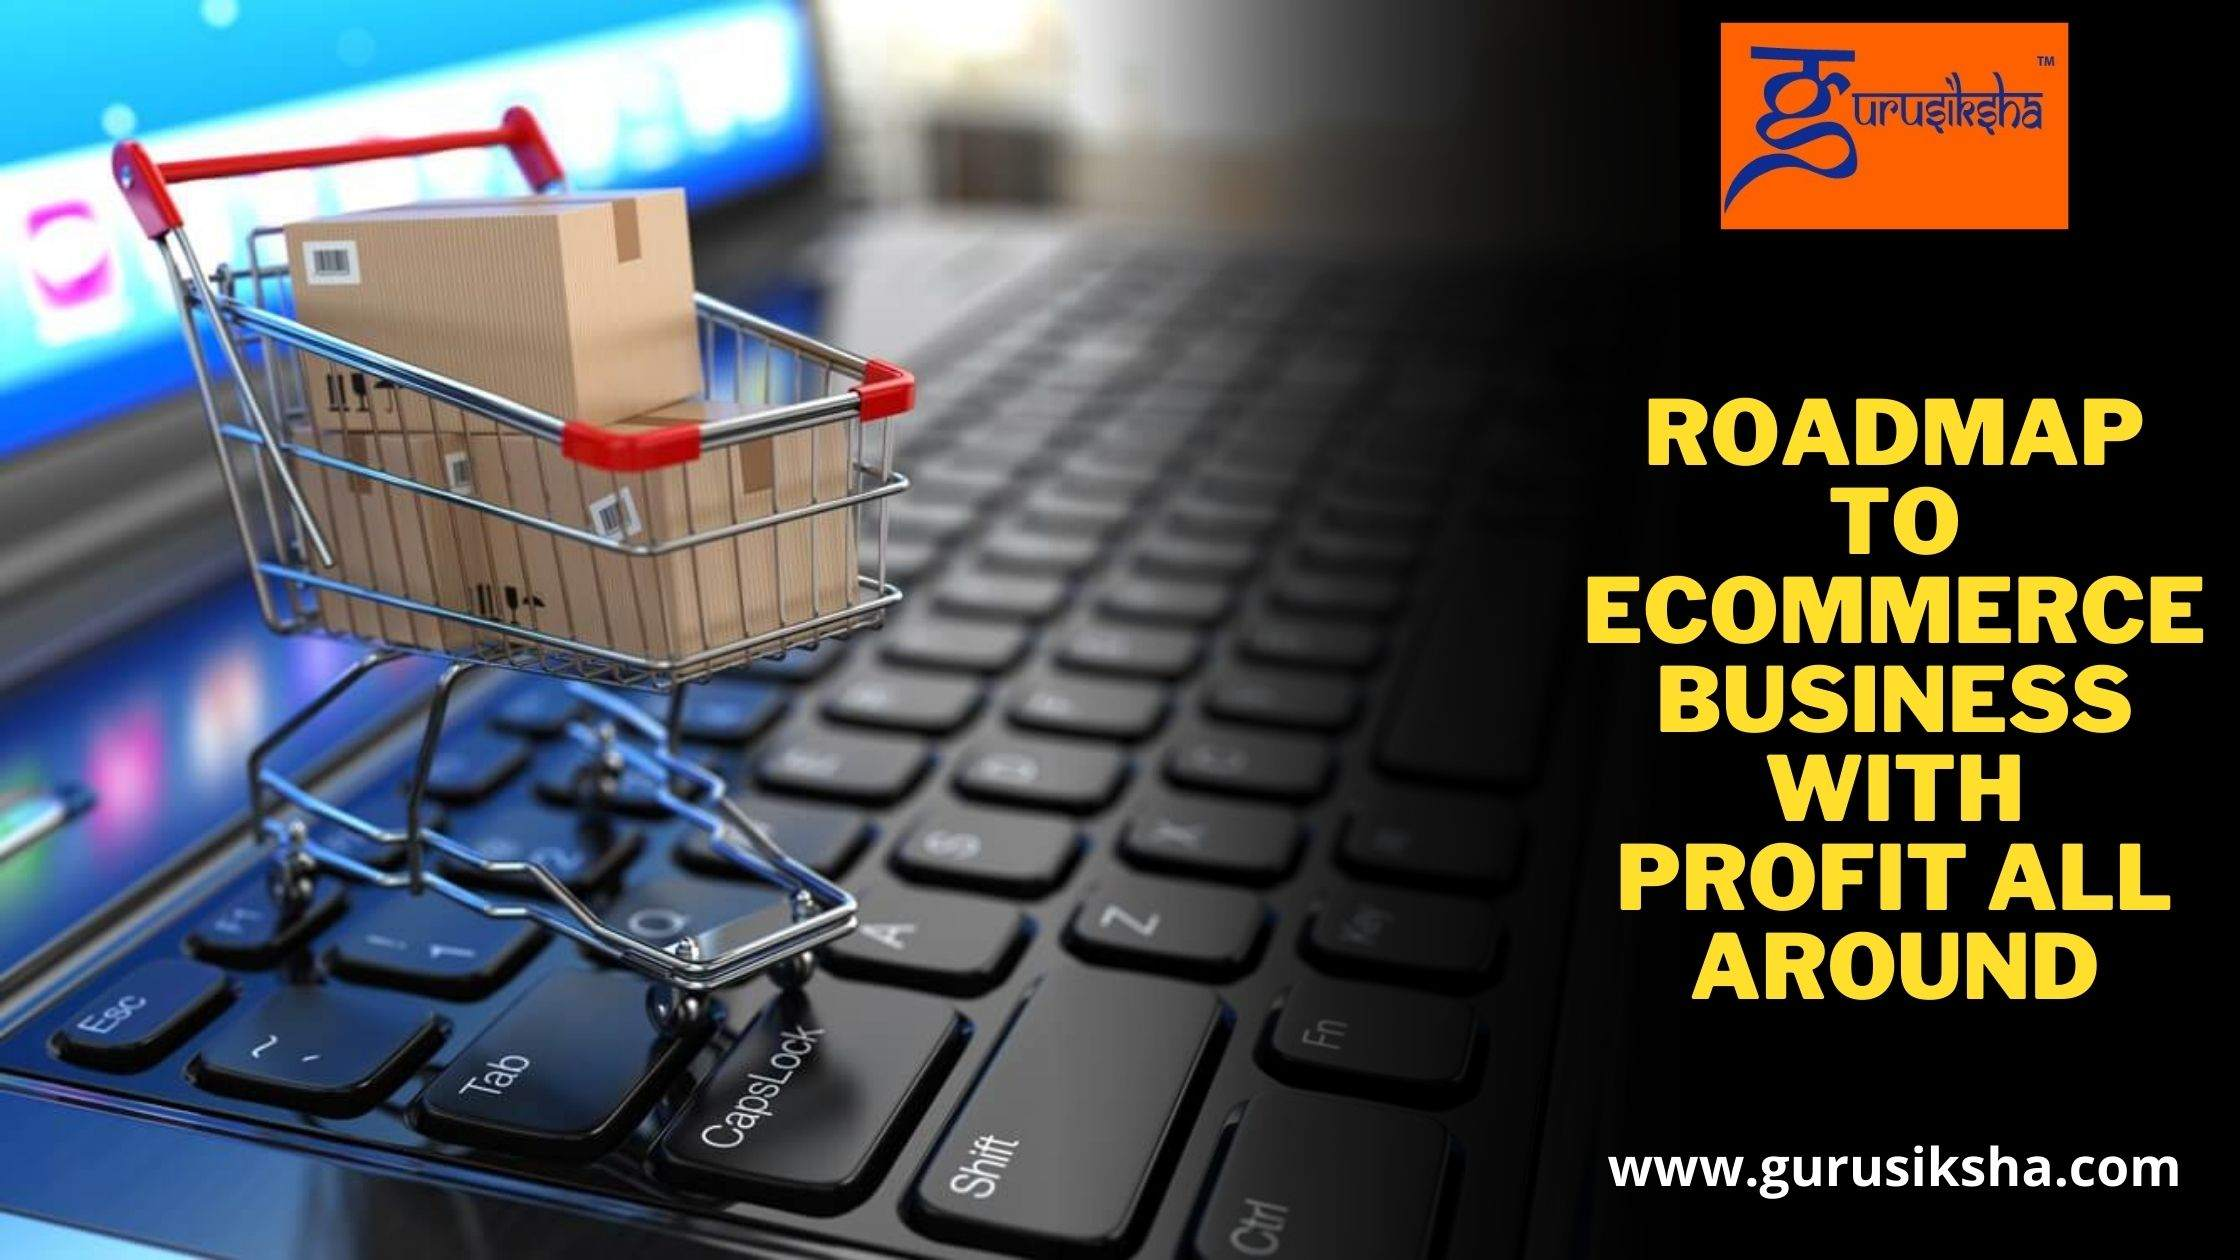 Roadmap To Ecommerce Business With Profit All Around